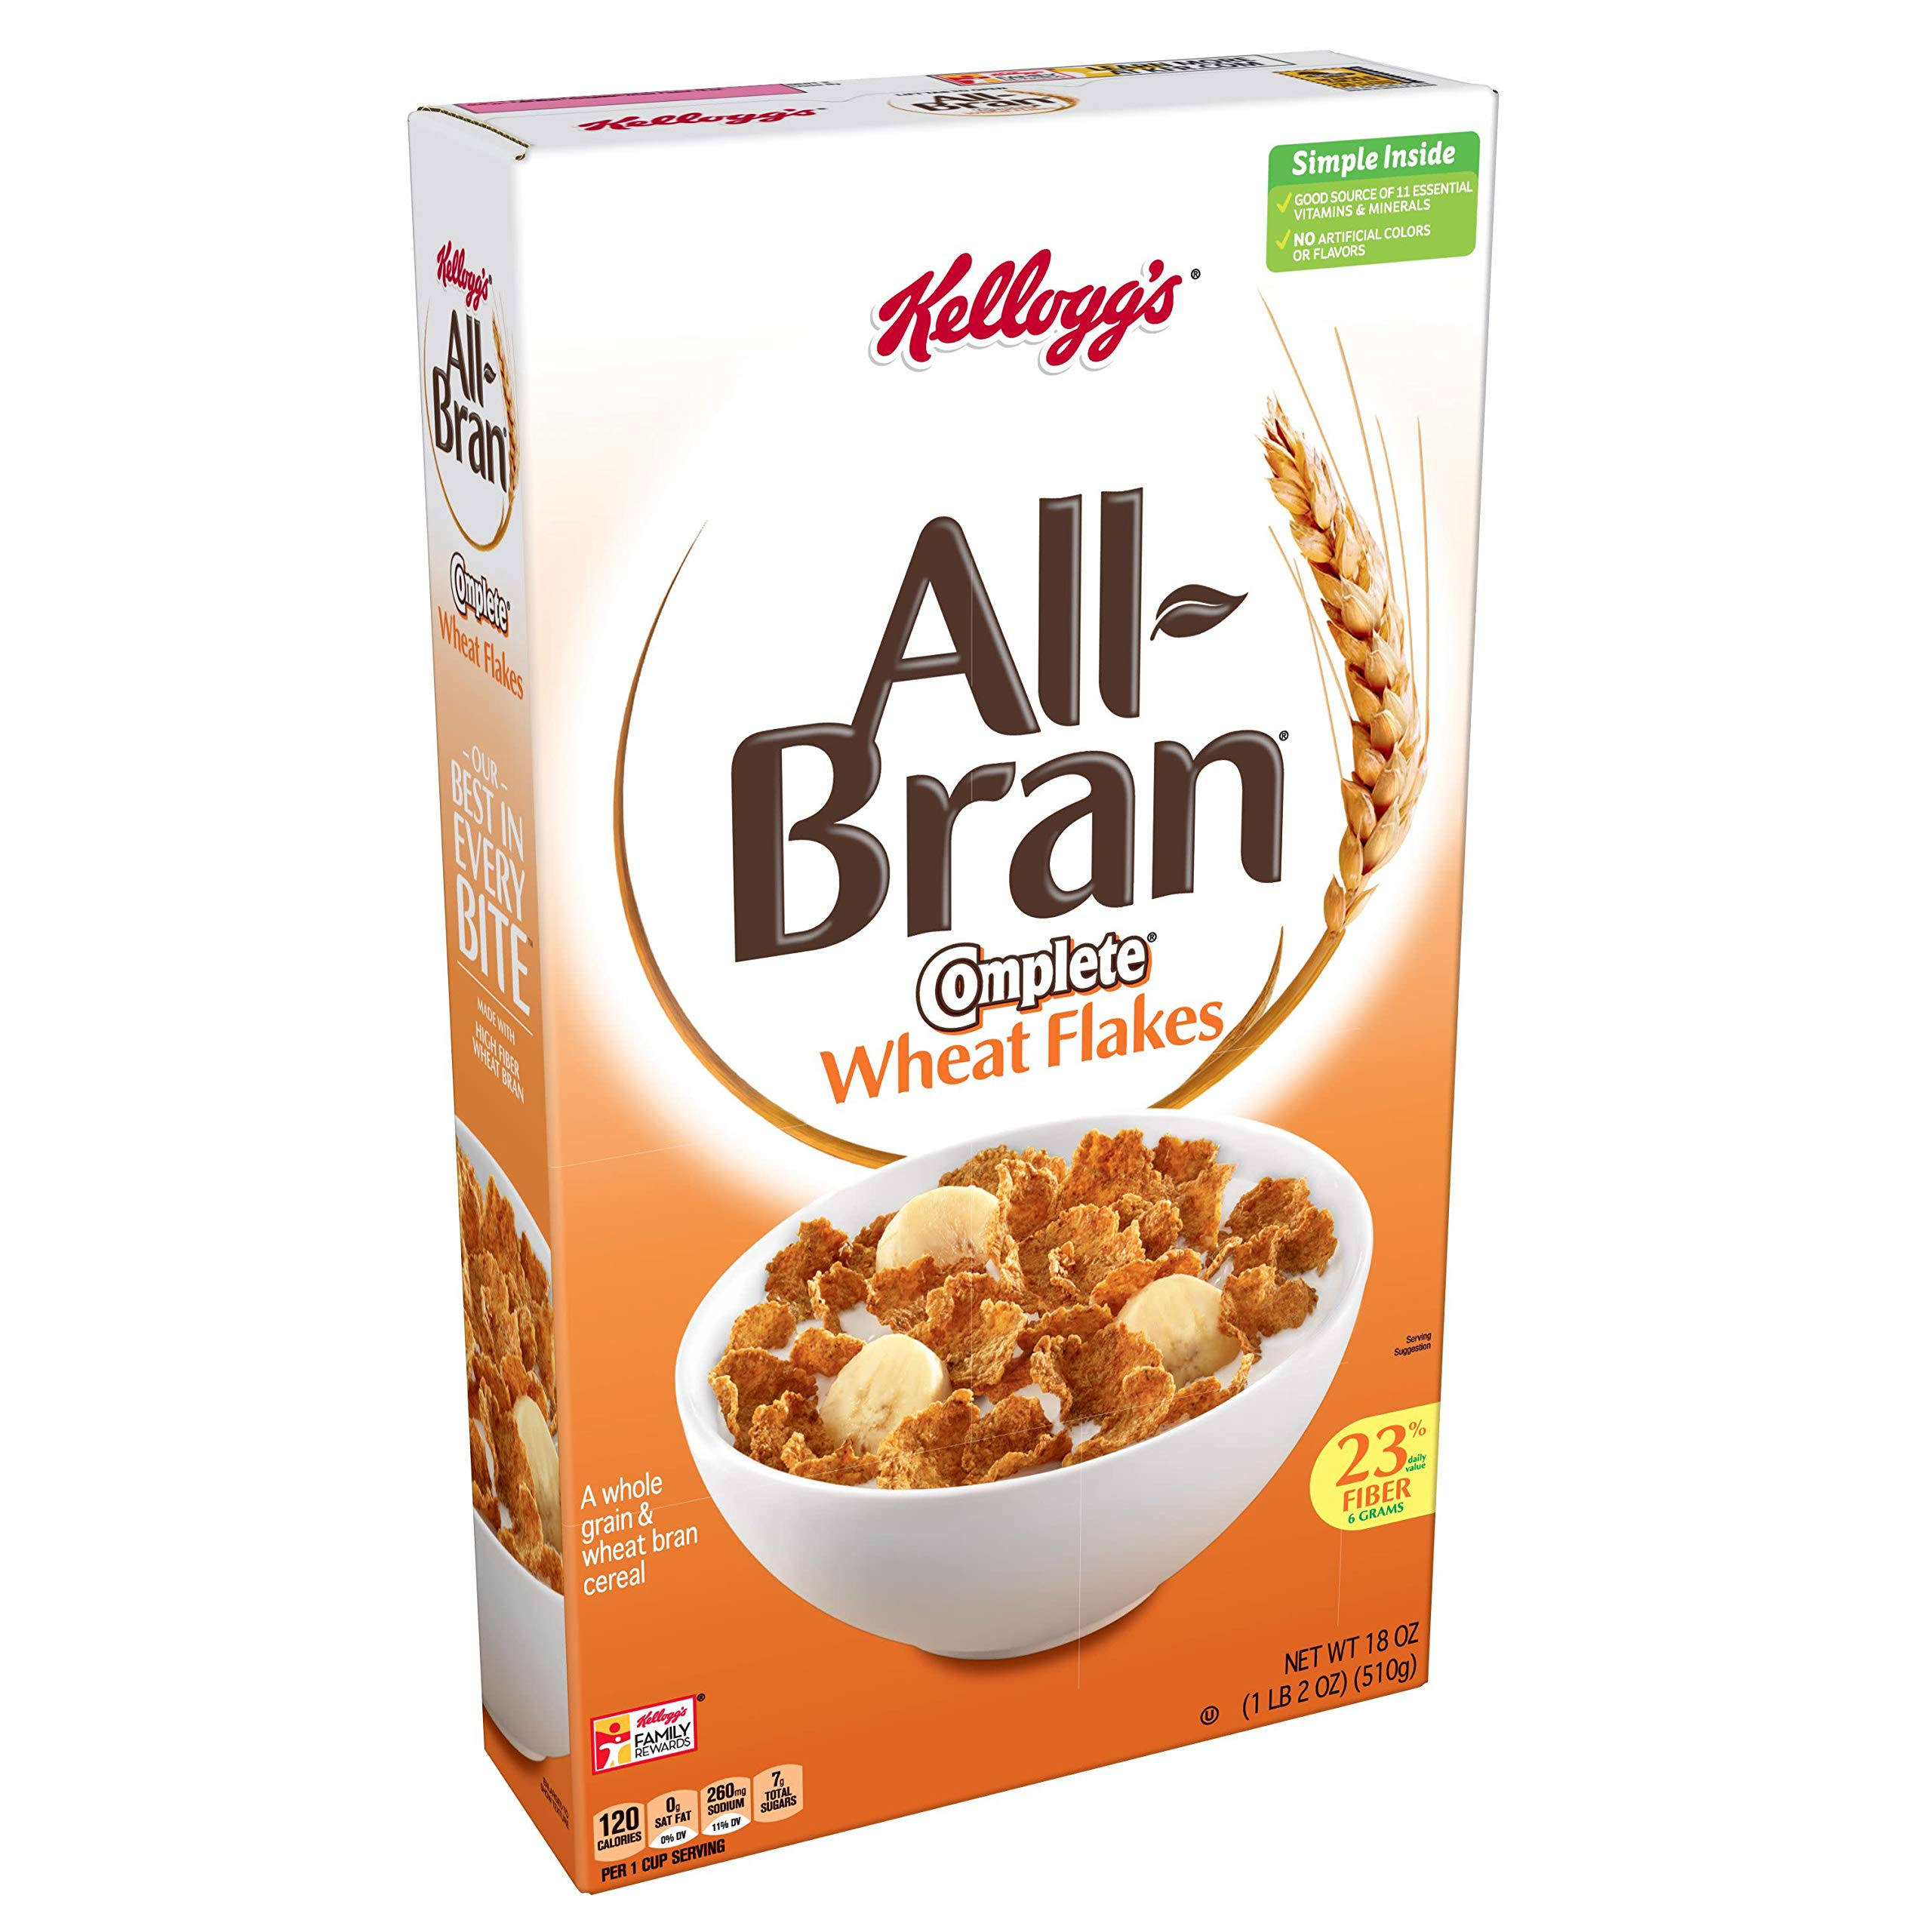 Kellogg's All-Bran Complete Wheat Flakes, Breakfast Cereal, Excellent Source of Fiber, 18oz Box